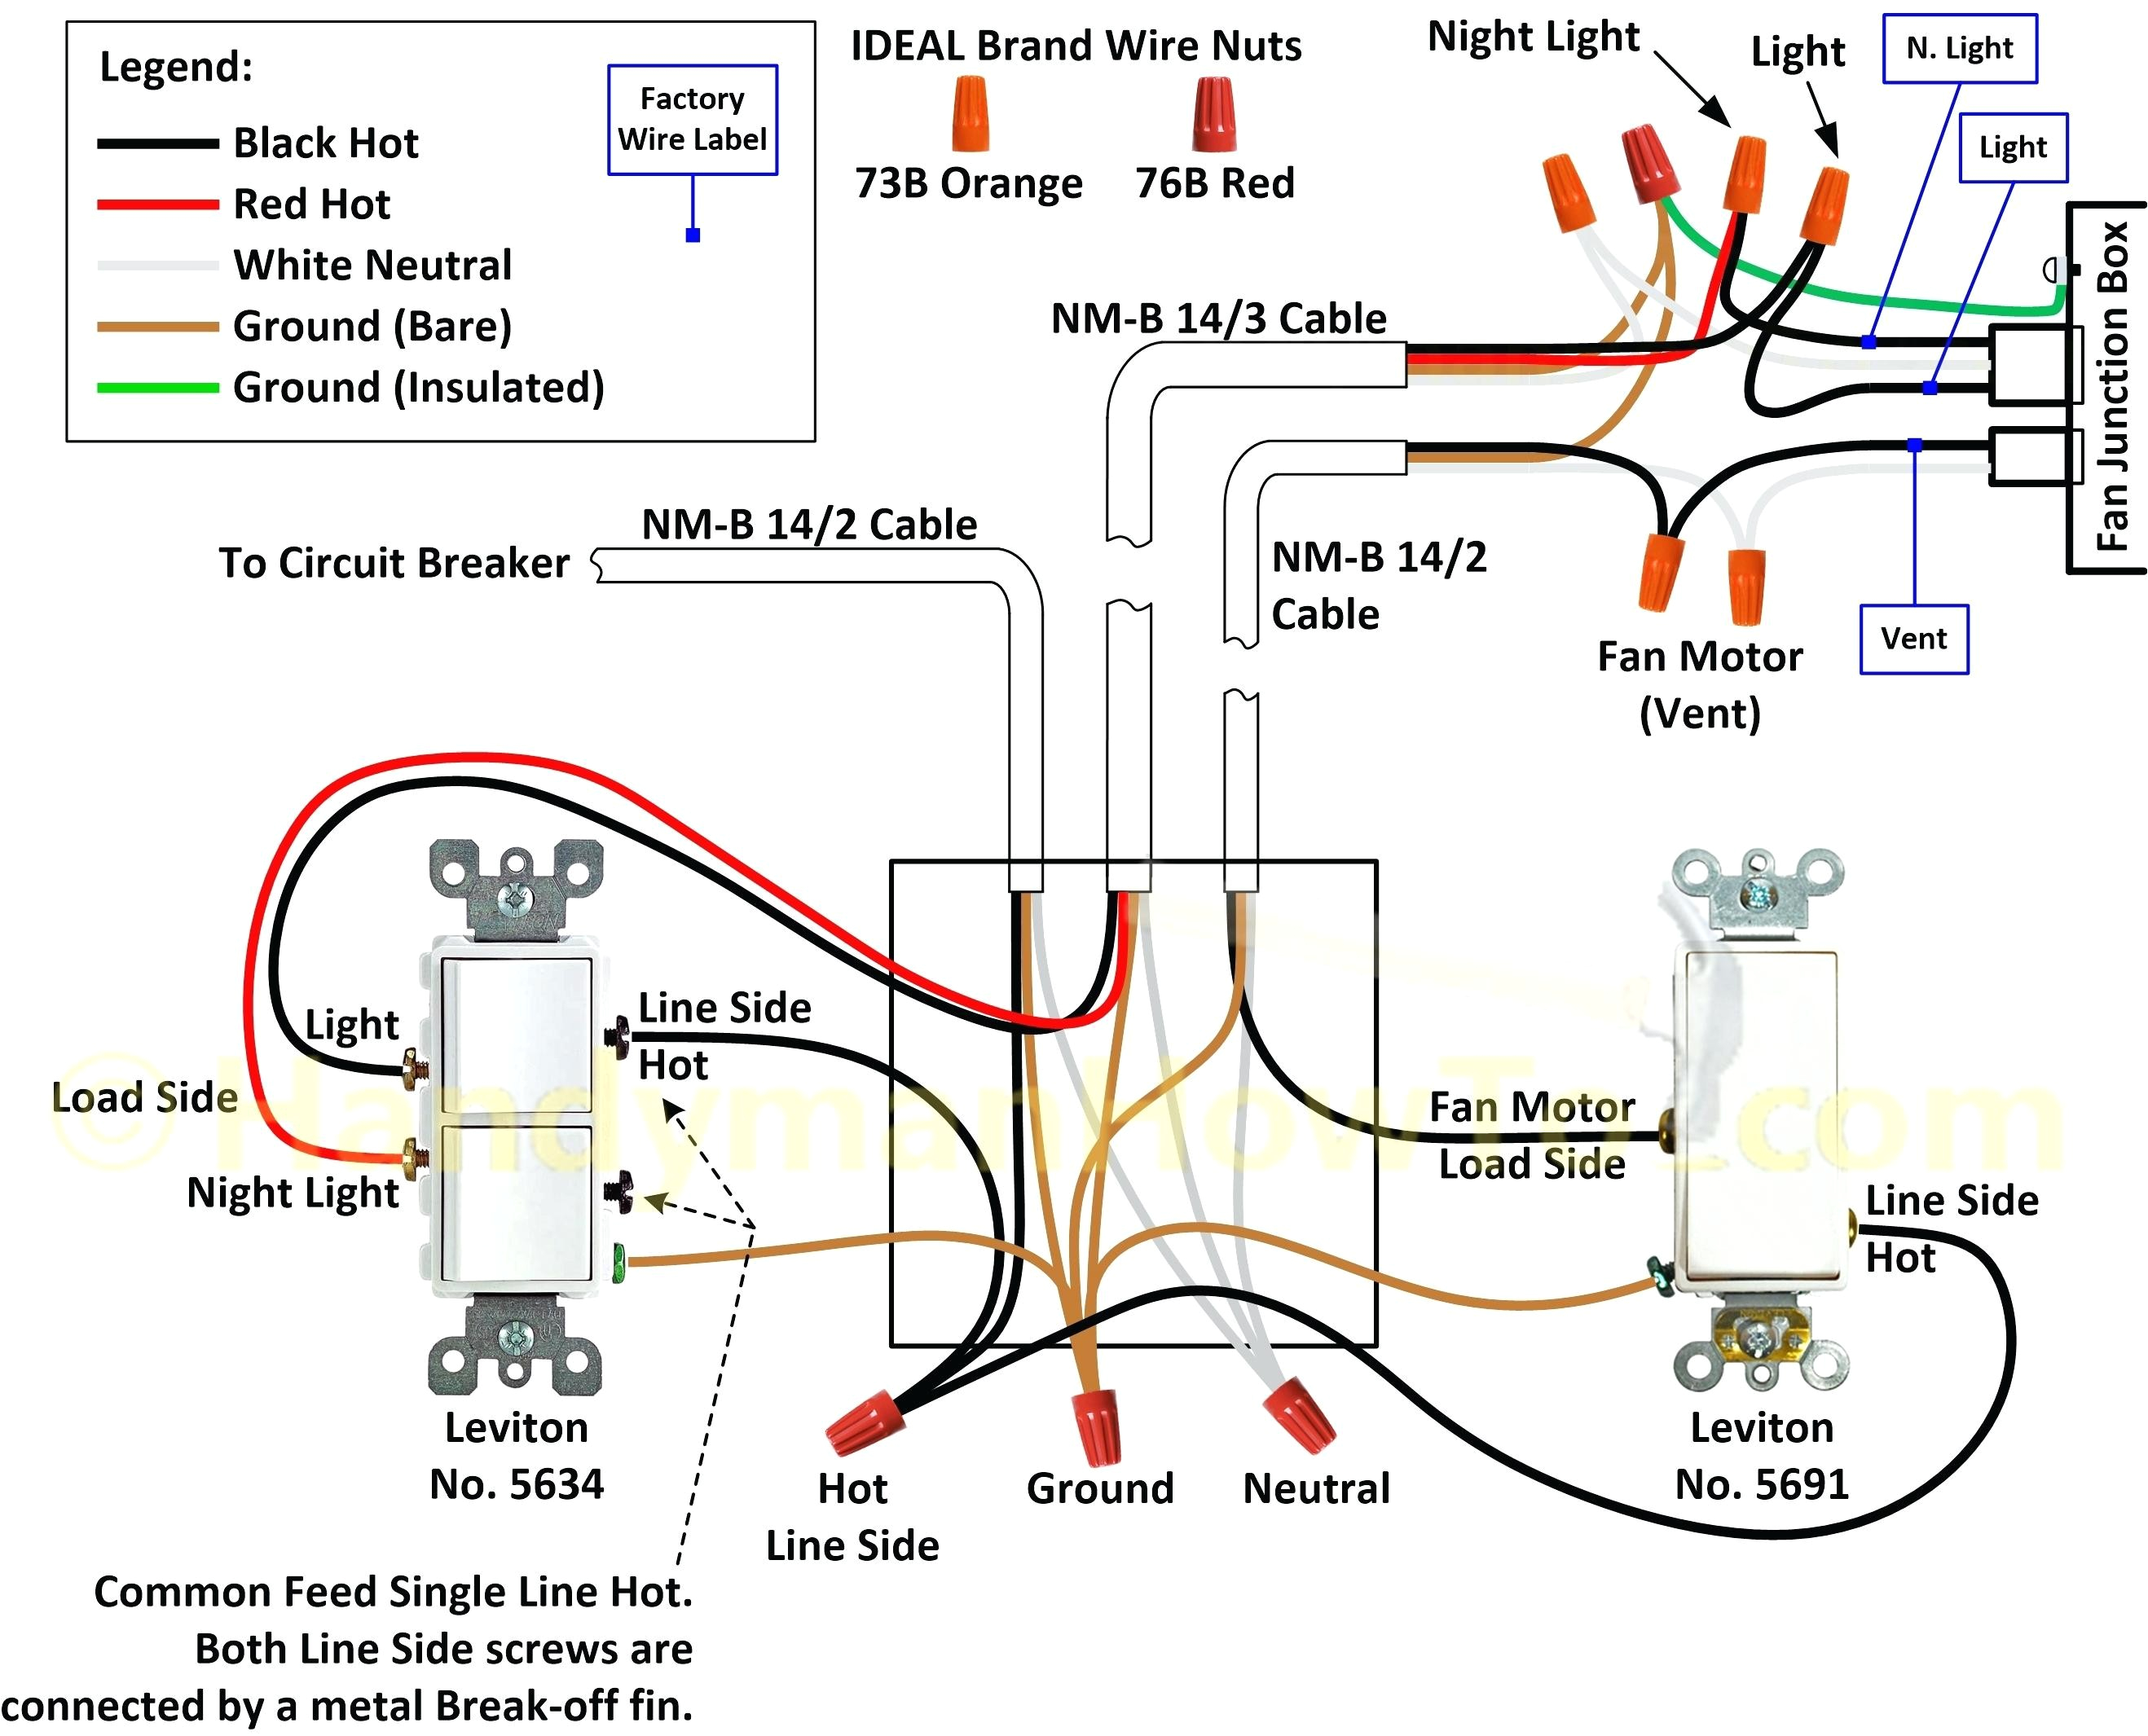 DIAGRAM] Wiring Diagrams For Lighting Circuits E2 80 93 Junction Box Method  FULL Version HD Quality Box Method - CHANNEL.HORIZONS-NPDC.FRDiagram Database